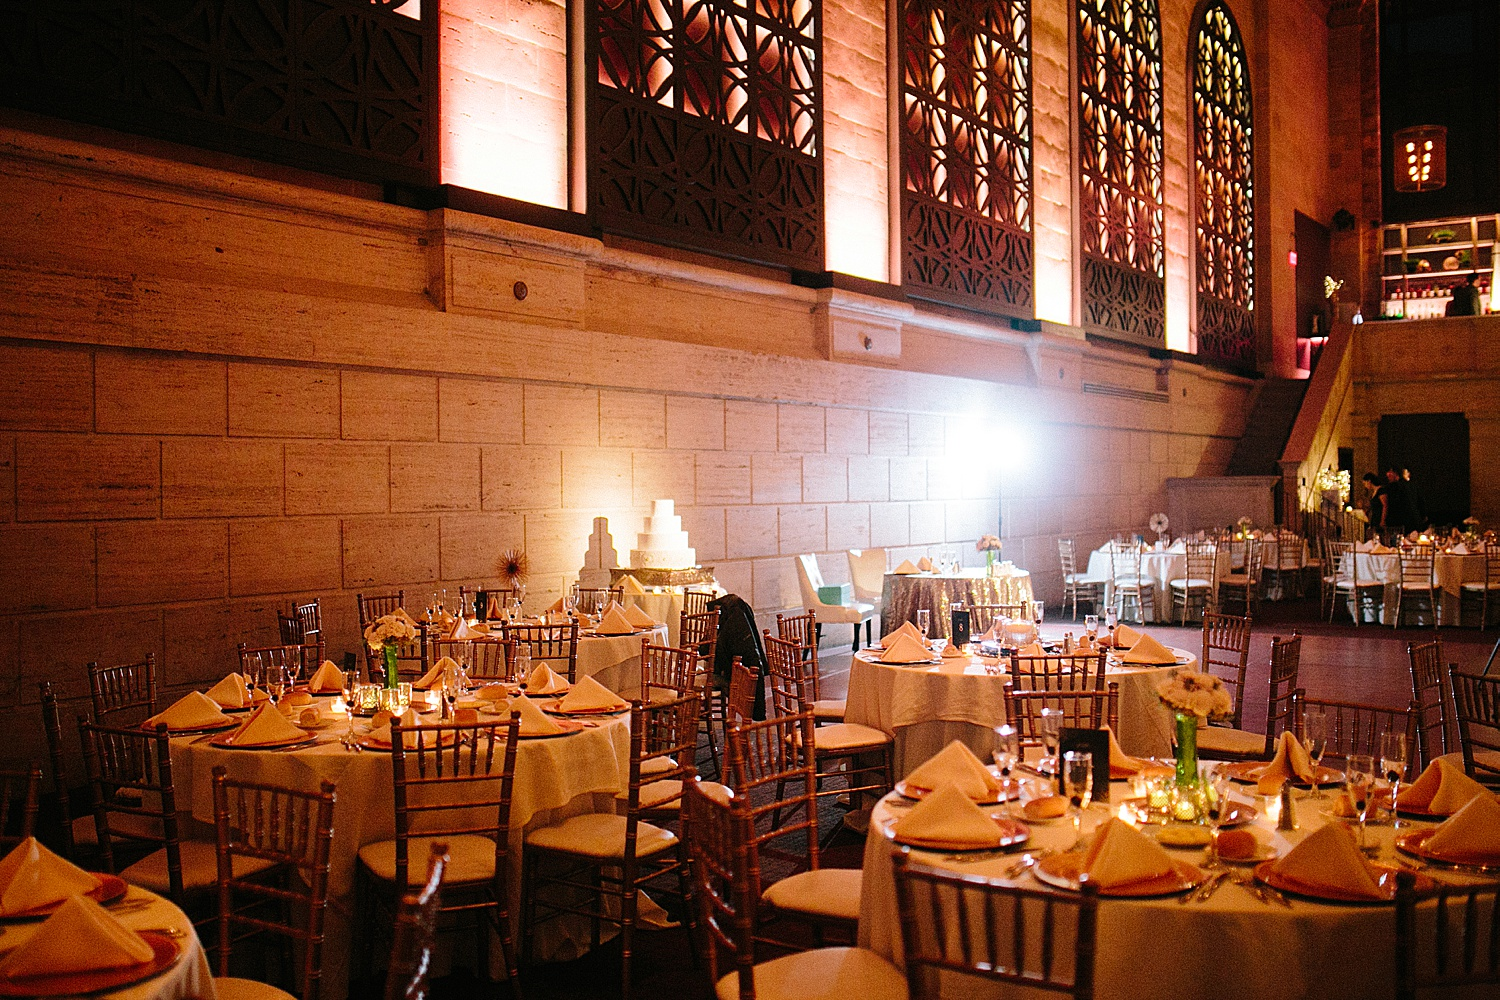 kirstentony_uniontrust_finleycatering_christchurch_philadelphia_wedding_image_0723.jpg